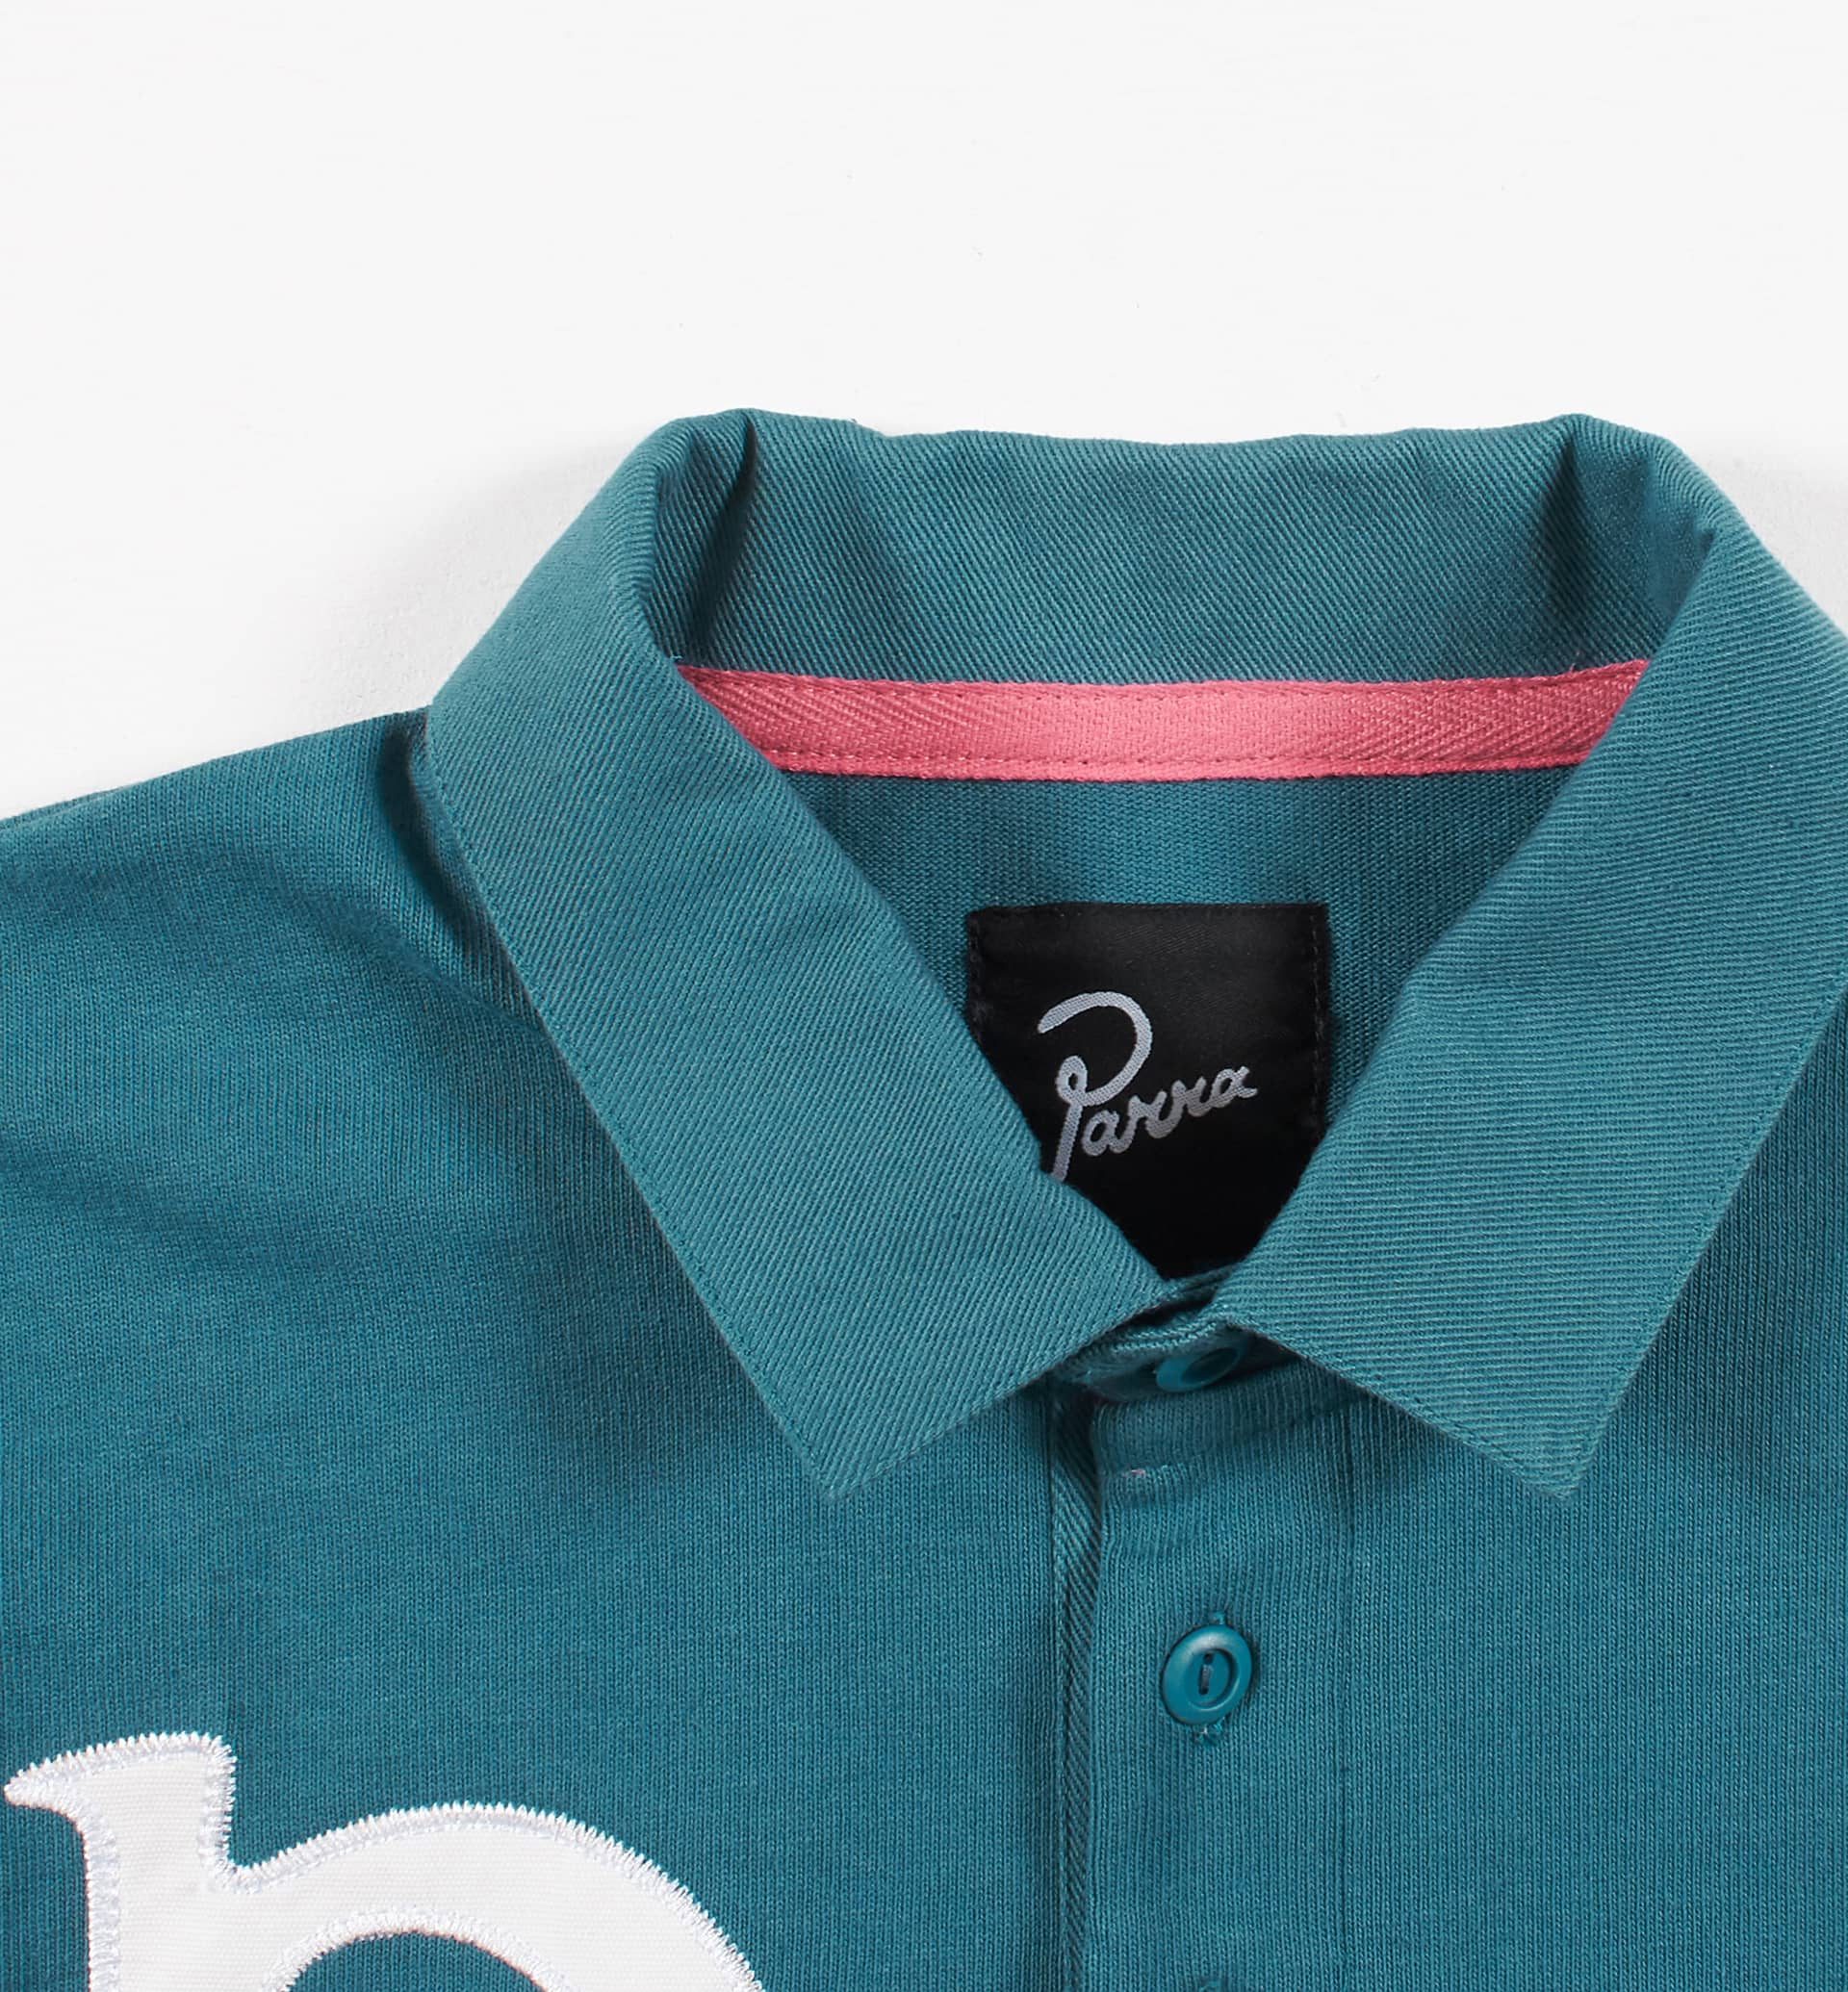 Parra - meadows rugby shirt